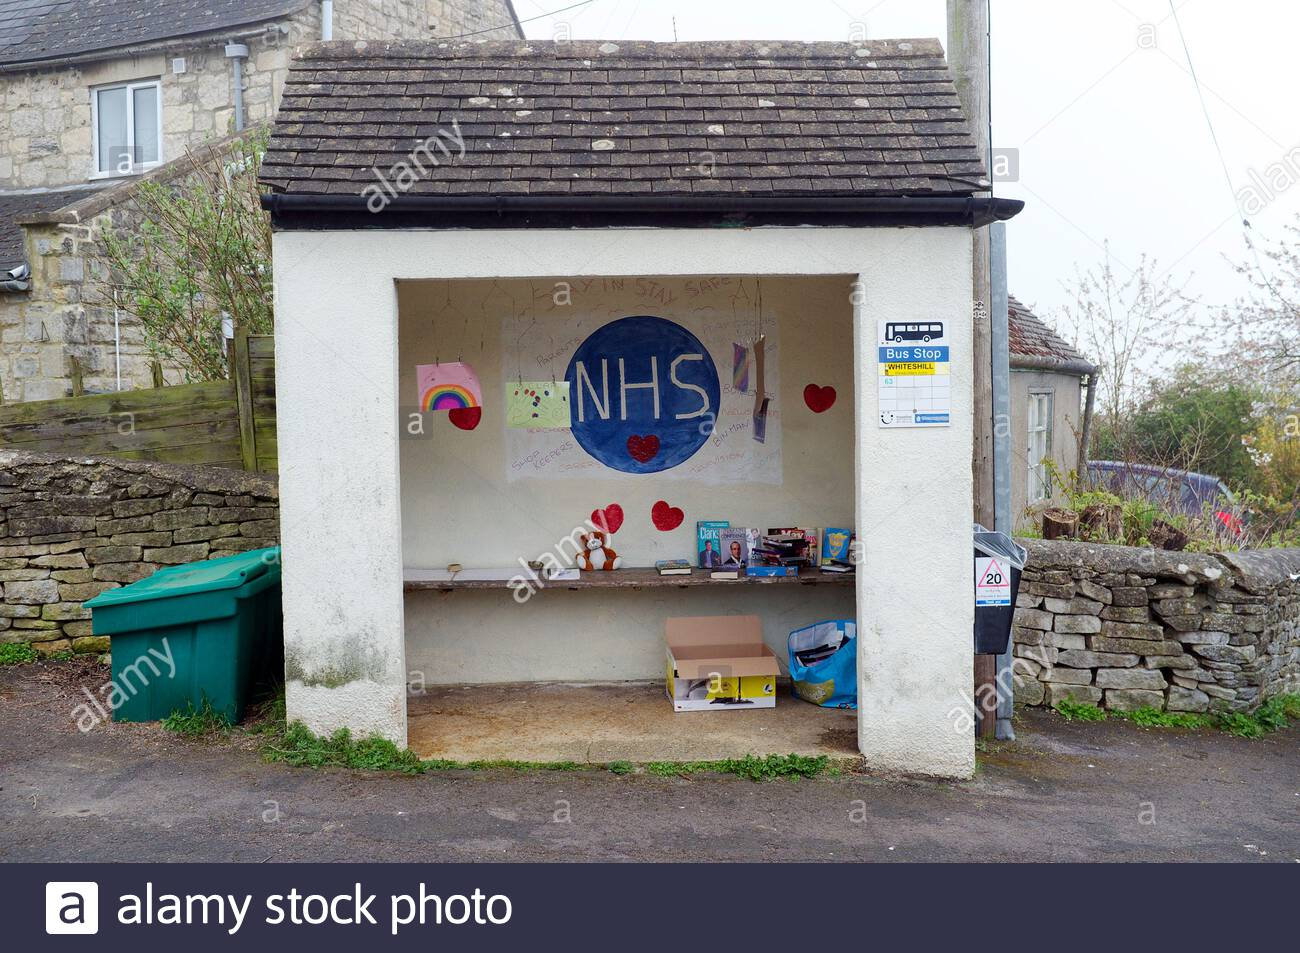 Covid 19 coronavirus - bus stop mural in praise of the National Health Service (NHS) and other key workers, in Stroud, Gloucestershire, UK. 4th April Stock Photo